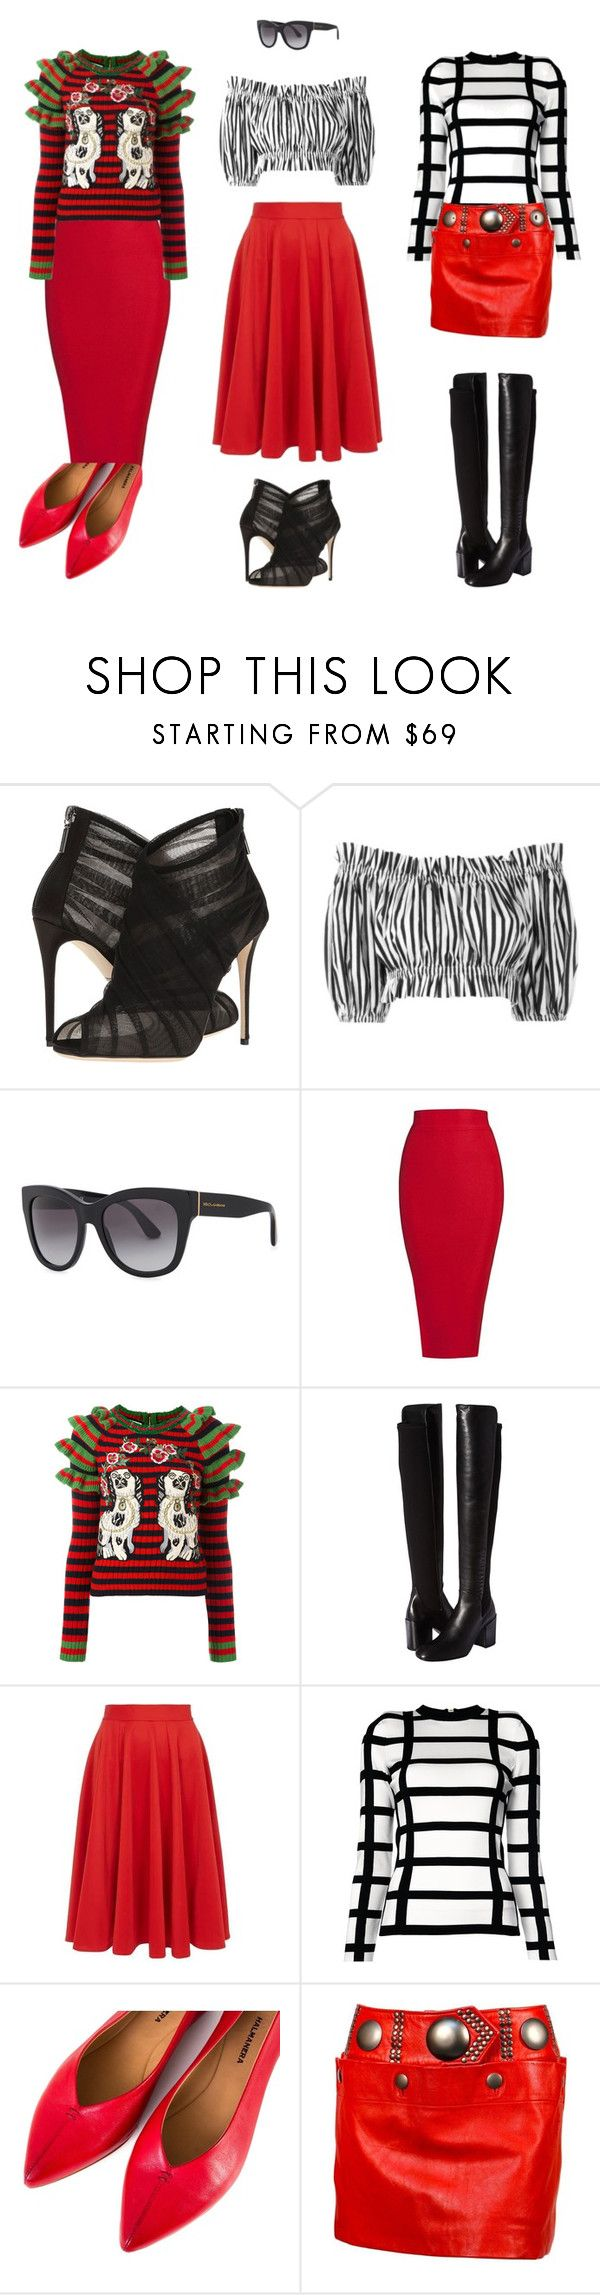 """Красные юбки"" by repriza on Polyvore featuring мода, Dolce&Gabbana, Gucci, Stuart Weitzman, Dorothy Perkins, Balmain, Halmanera и Issey Miyake"